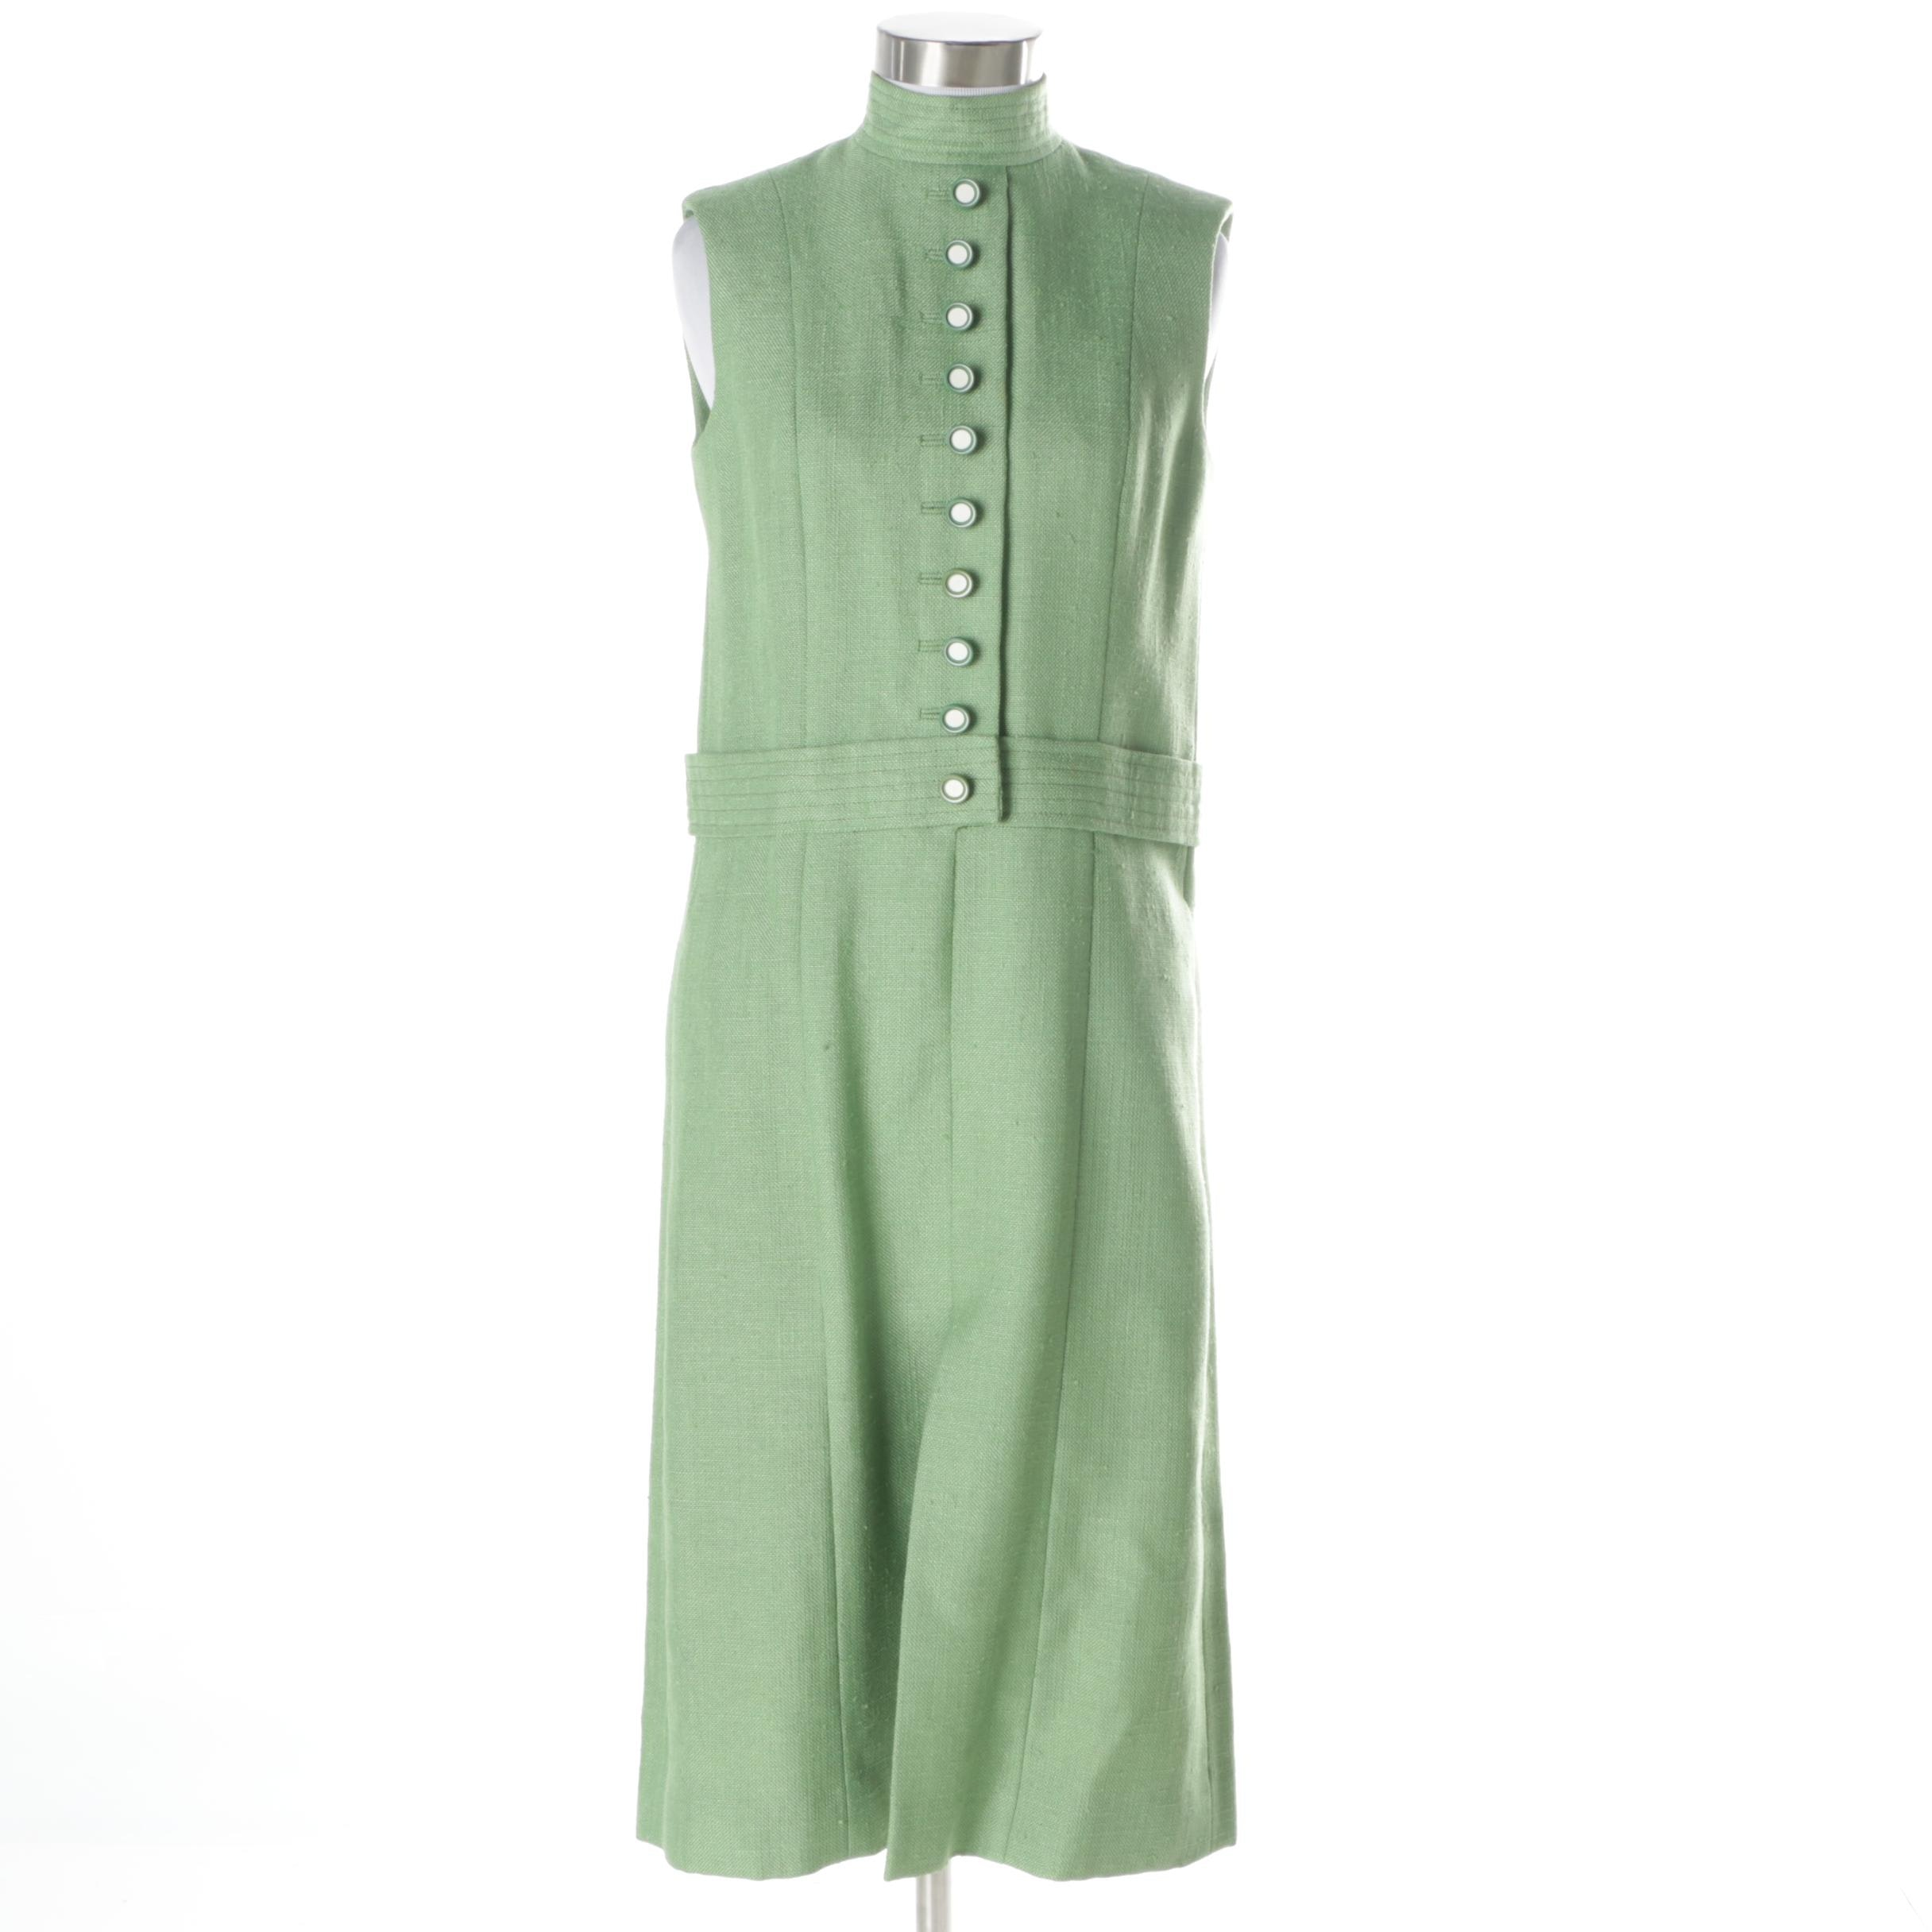 Vintage Green Sleeveless Dress